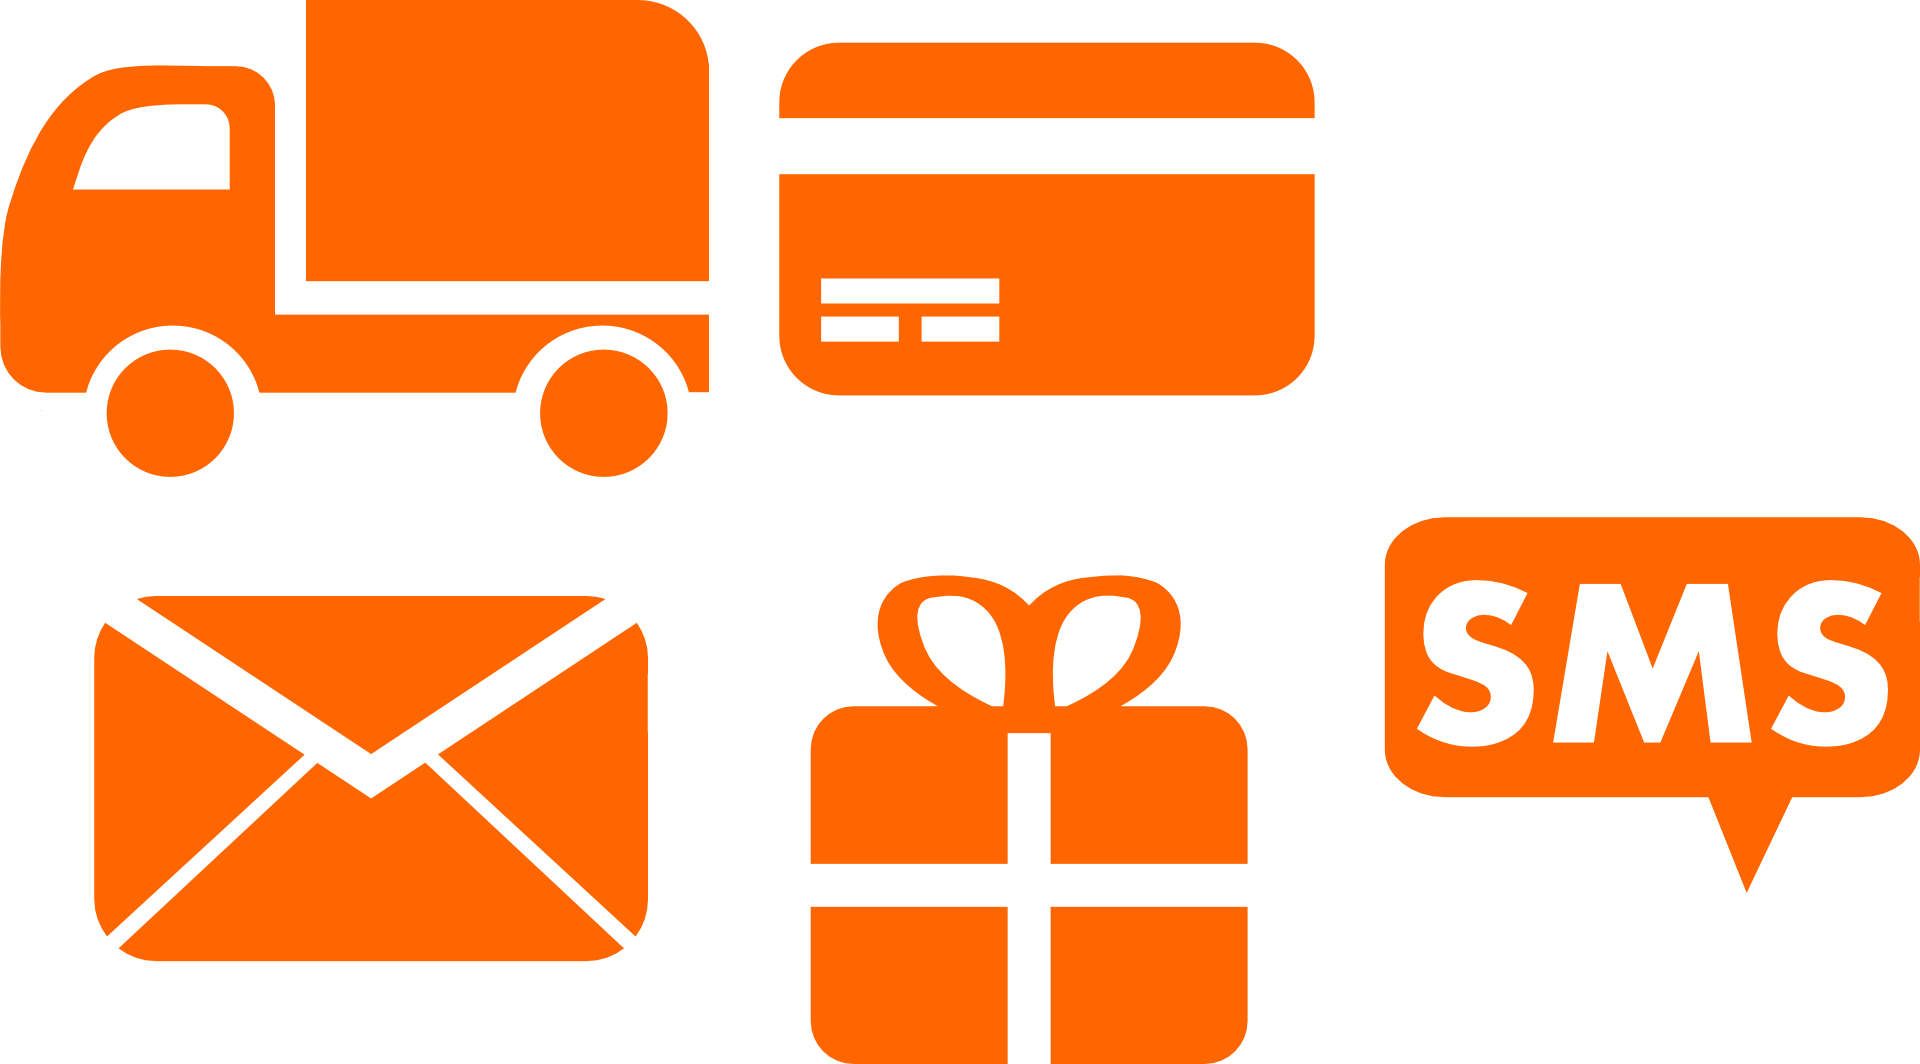 truck, credit card, letter, gift, and sms icons